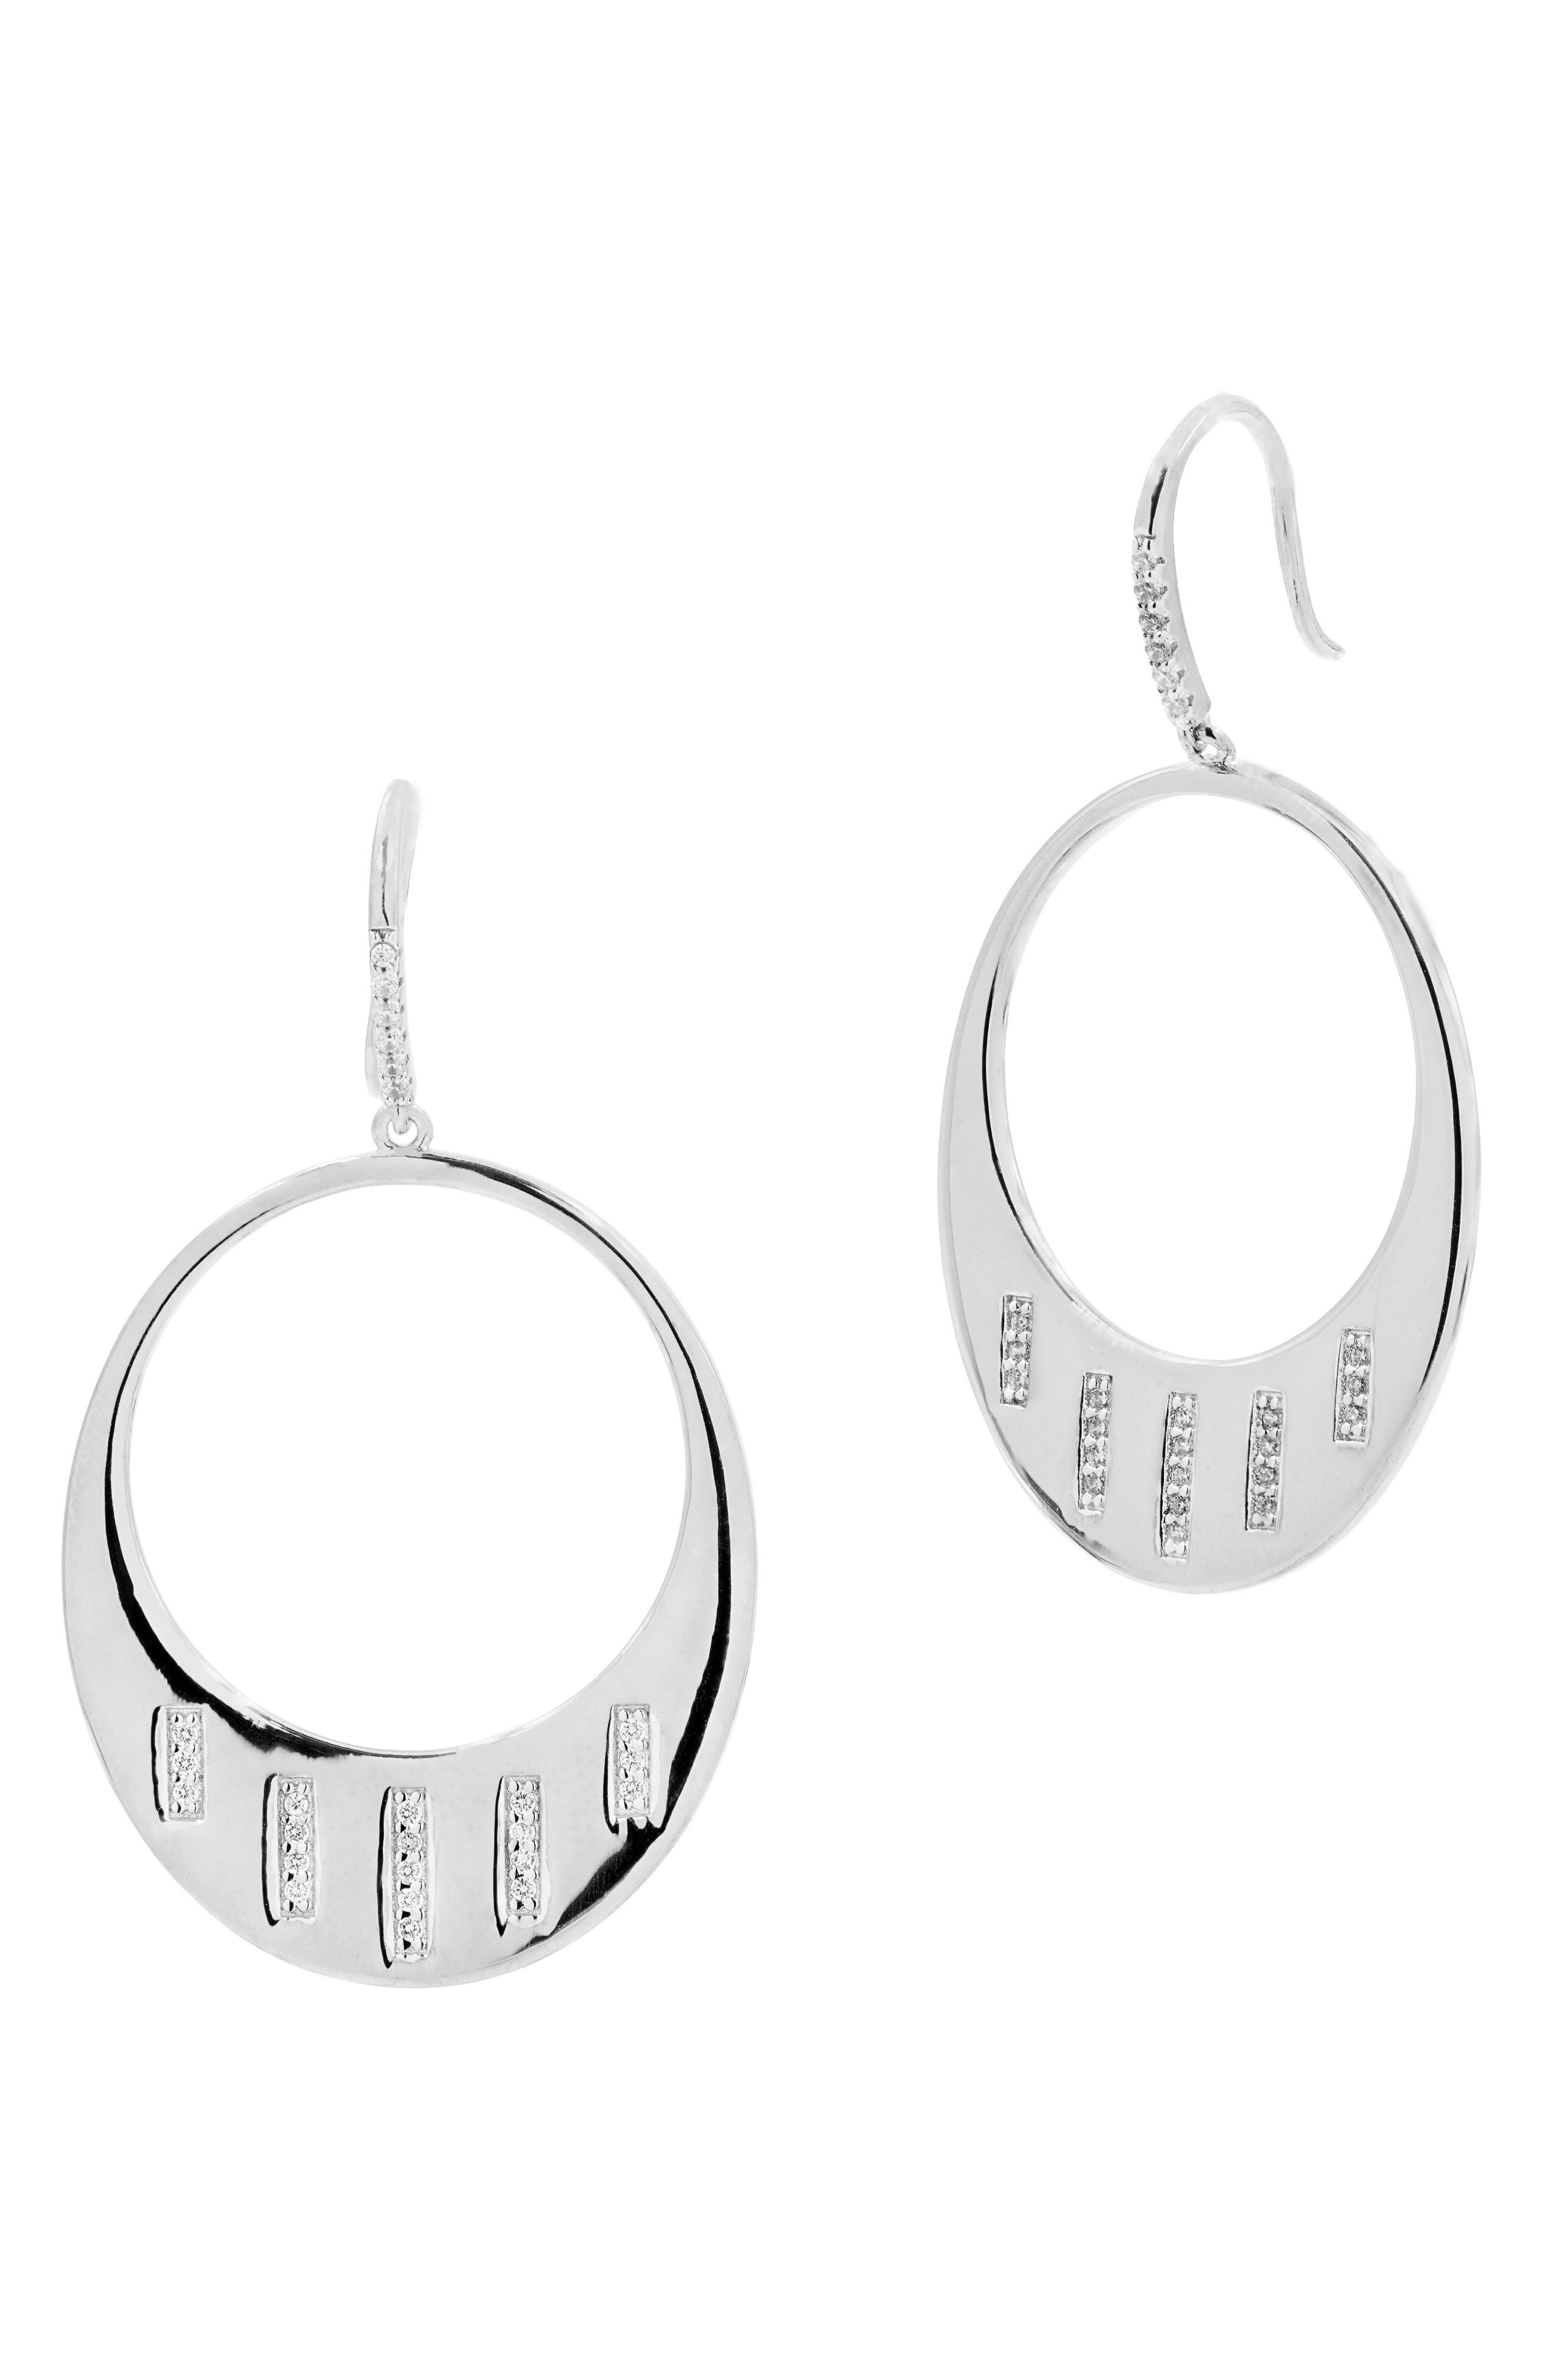 Radiance Cubic Zirconia Drop Earrings,                         Main,                         color, SILVER